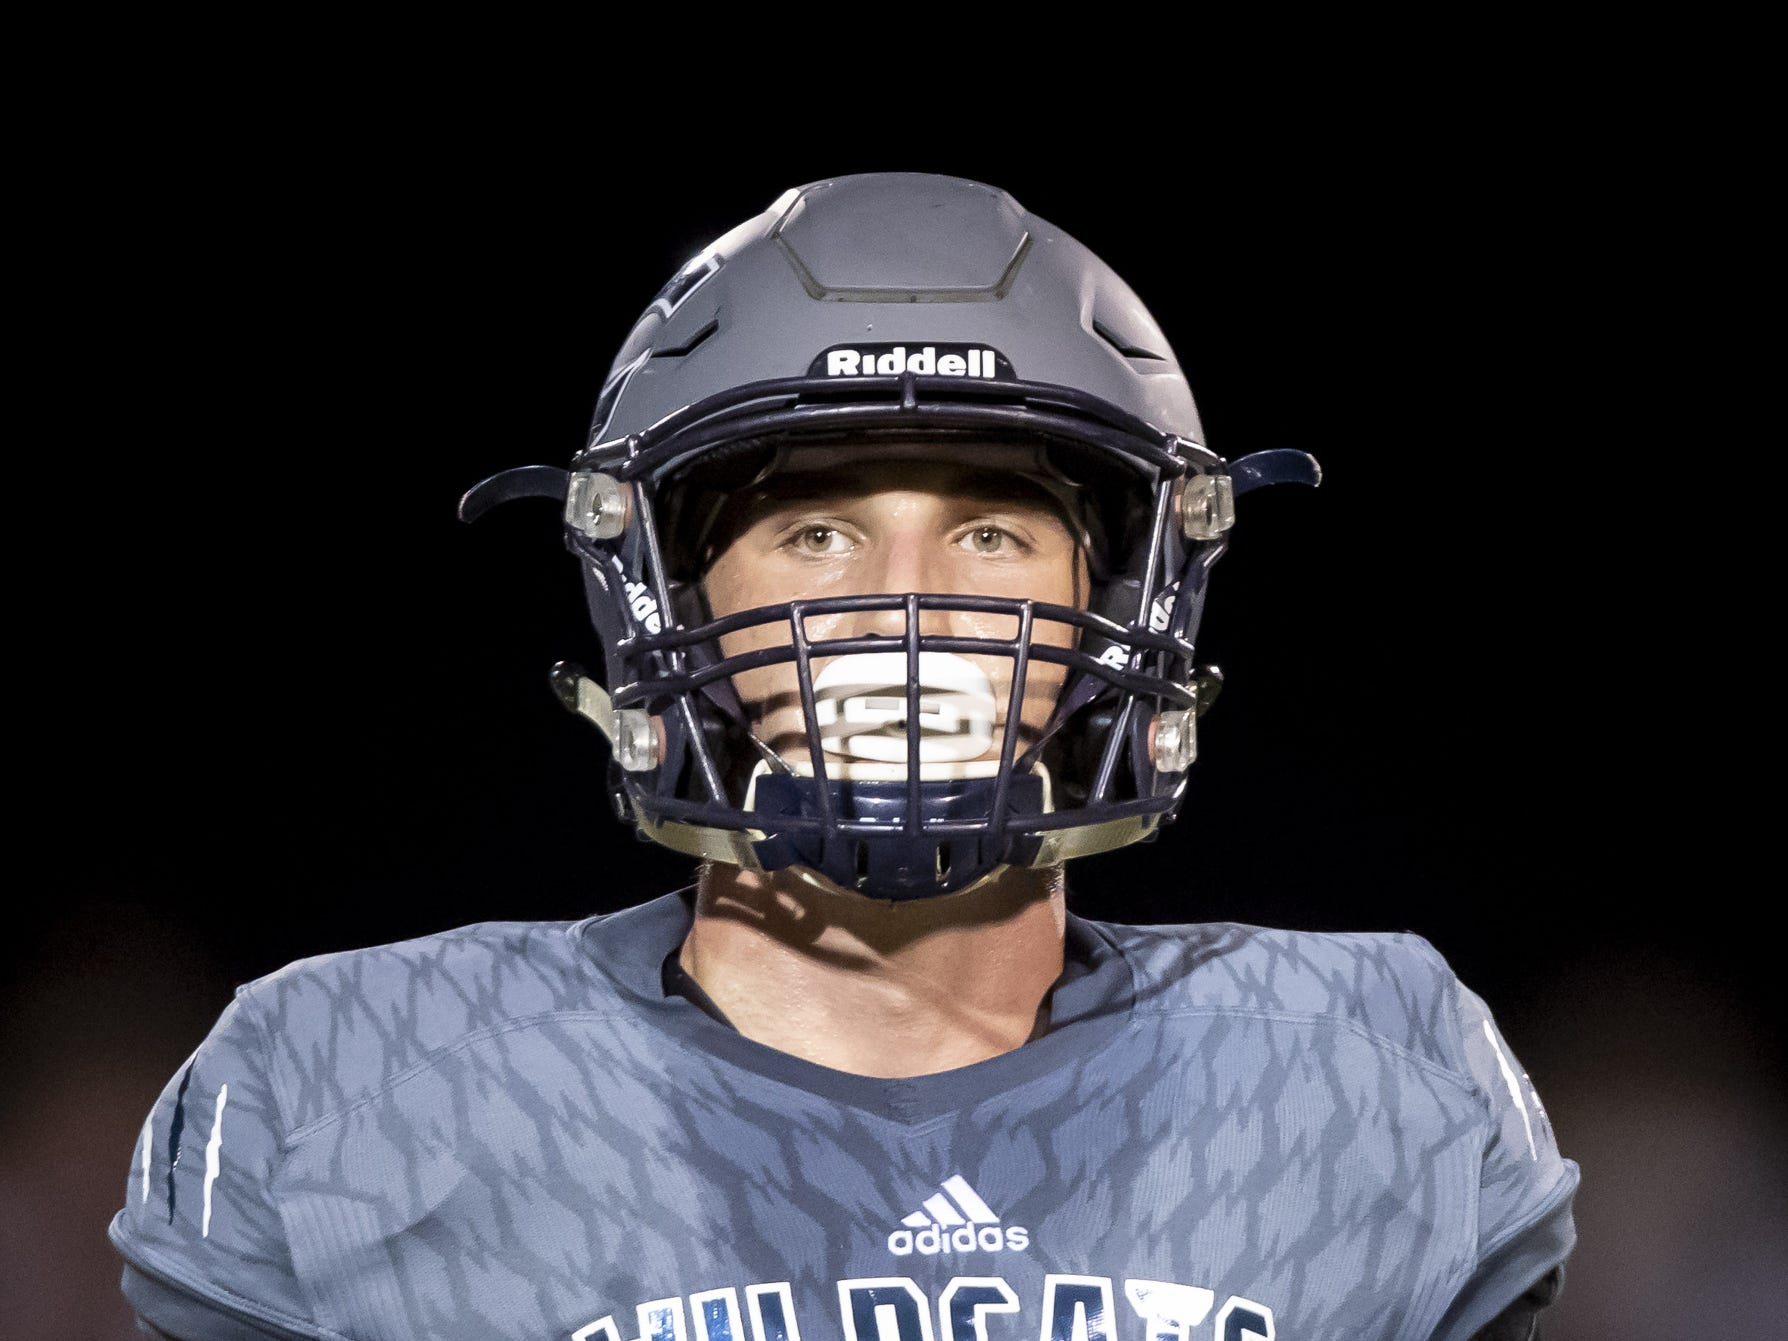 Senior wide receiver Ben Carter (15) of the Willow Canyon Wildcats looks on during the game against the Shadow Ridge Stallions at Willow Canyon High School on Friday, September 7, 2018 in Surprise, Arizona. #azhsfb